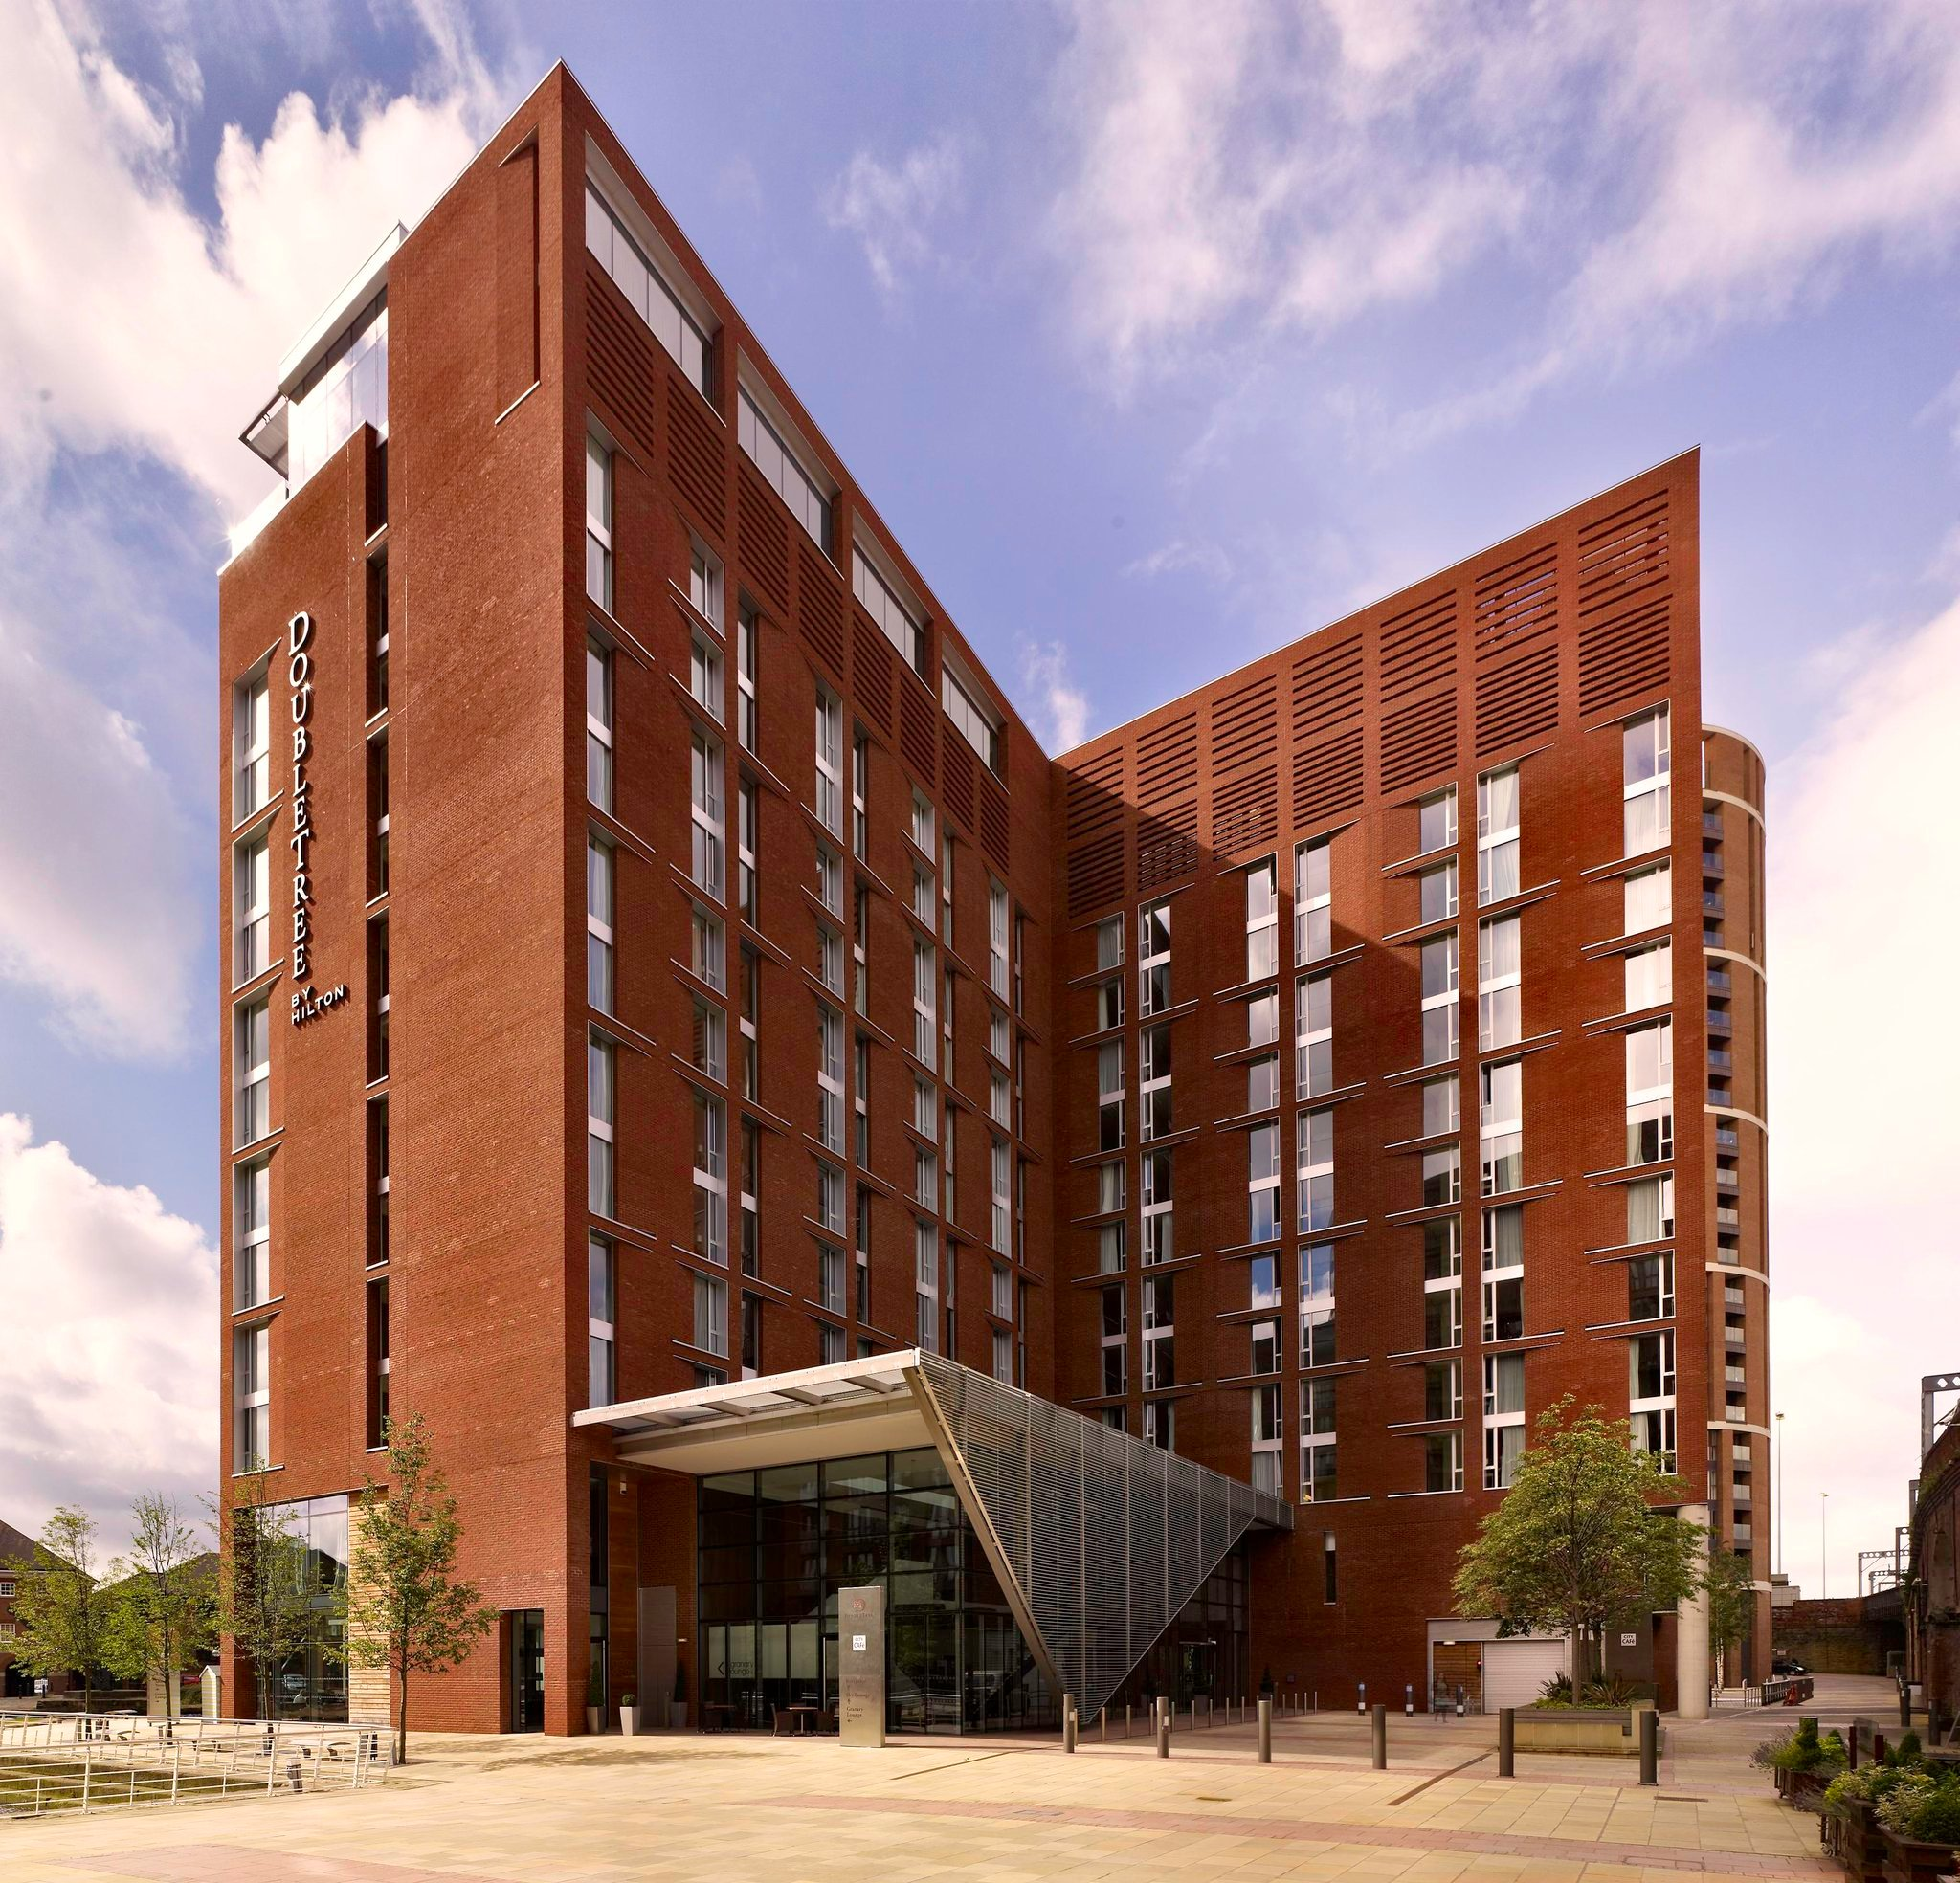 Doubletree by Hilton Hotel Leeds City Centre